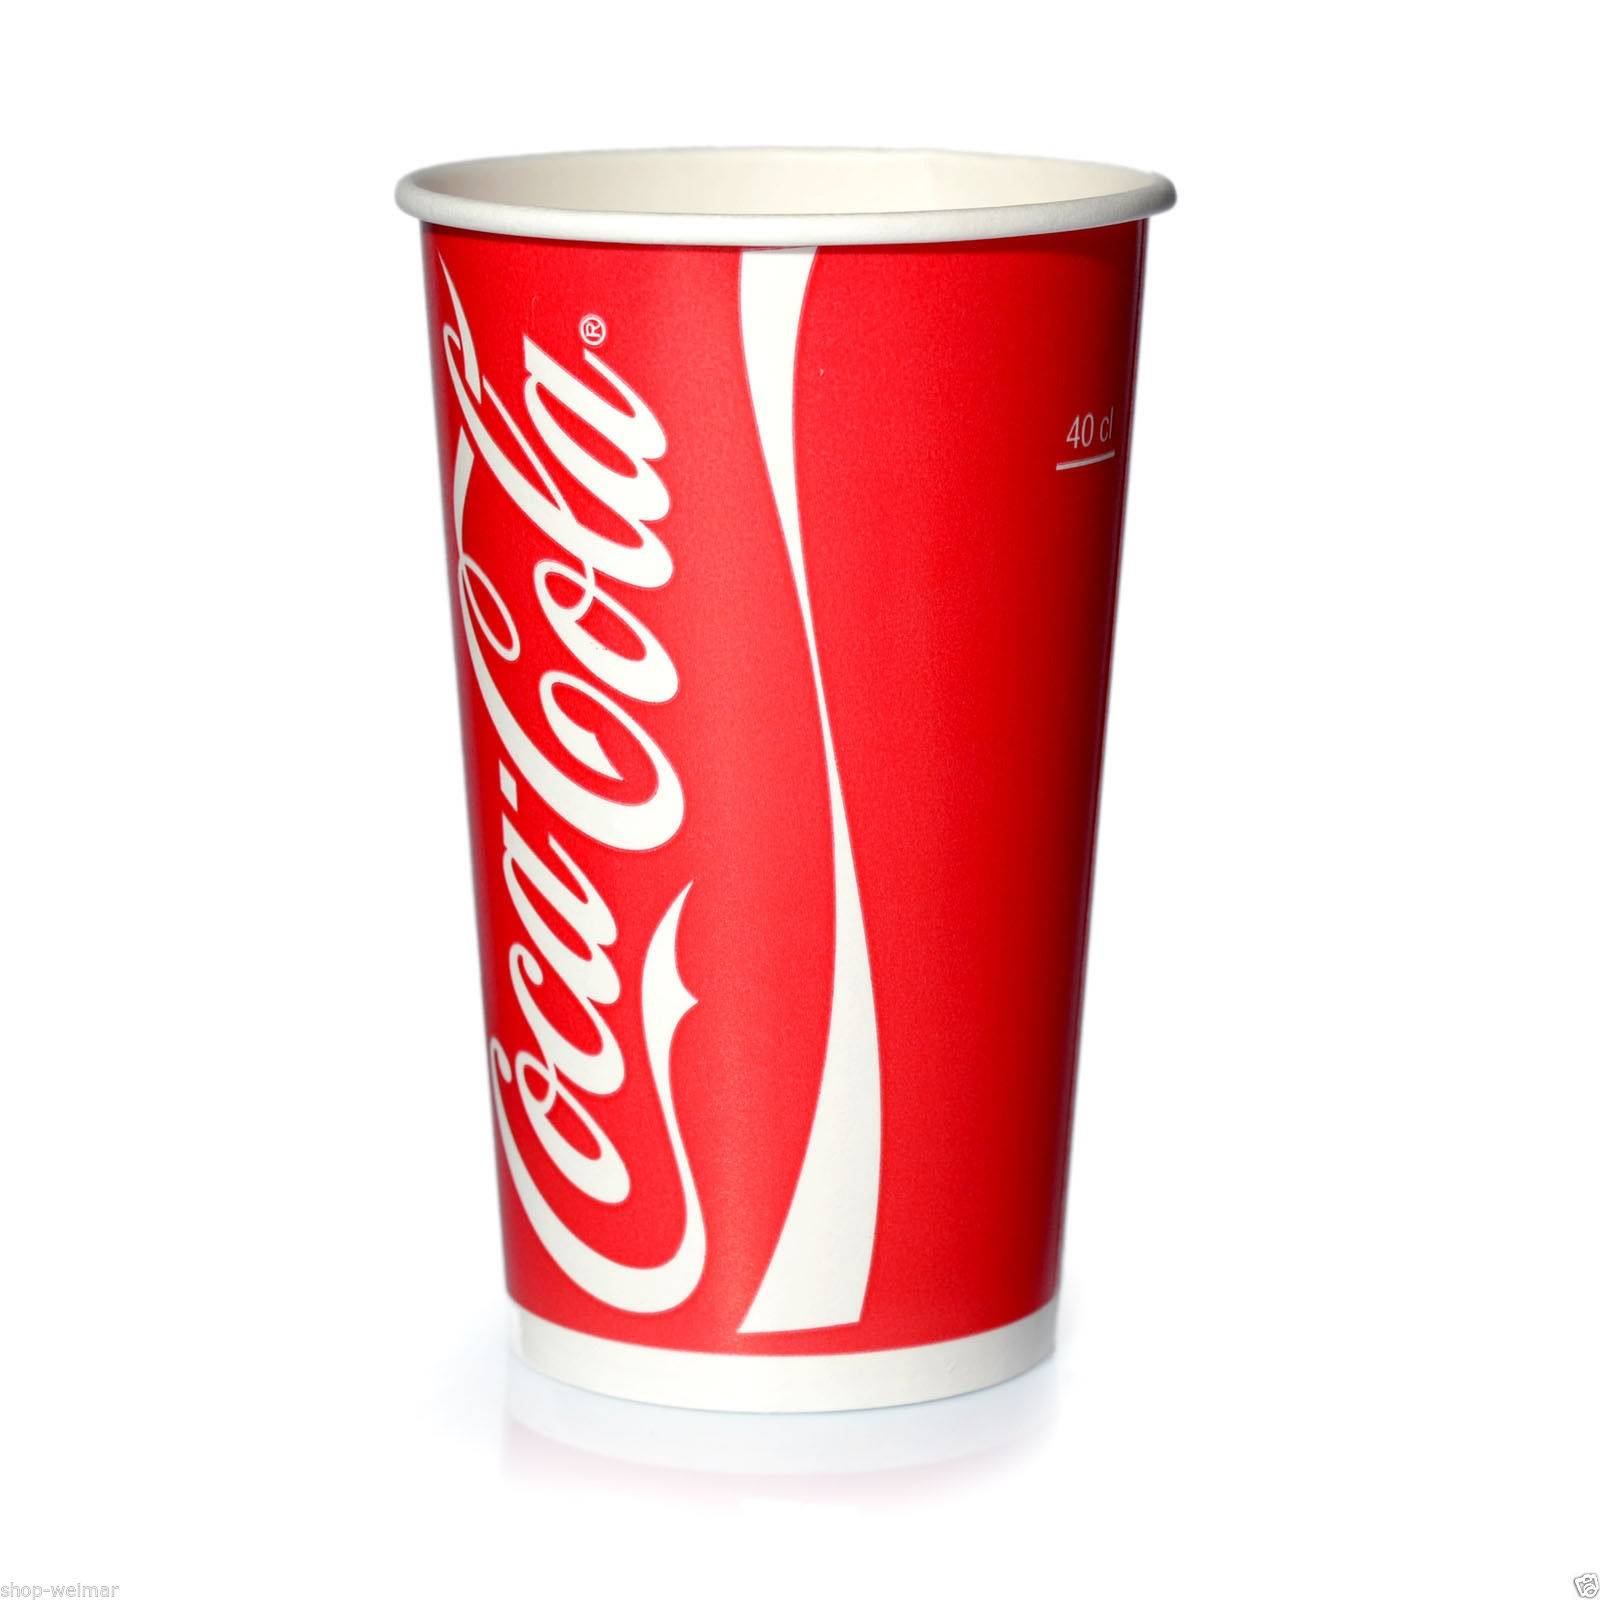 coca cola becher 0 4 l pappbecher trinkbecher 50 kaltgetr nkebecher 400 ml ebay. Black Bedroom Furniture Sets. Home Design Ideas